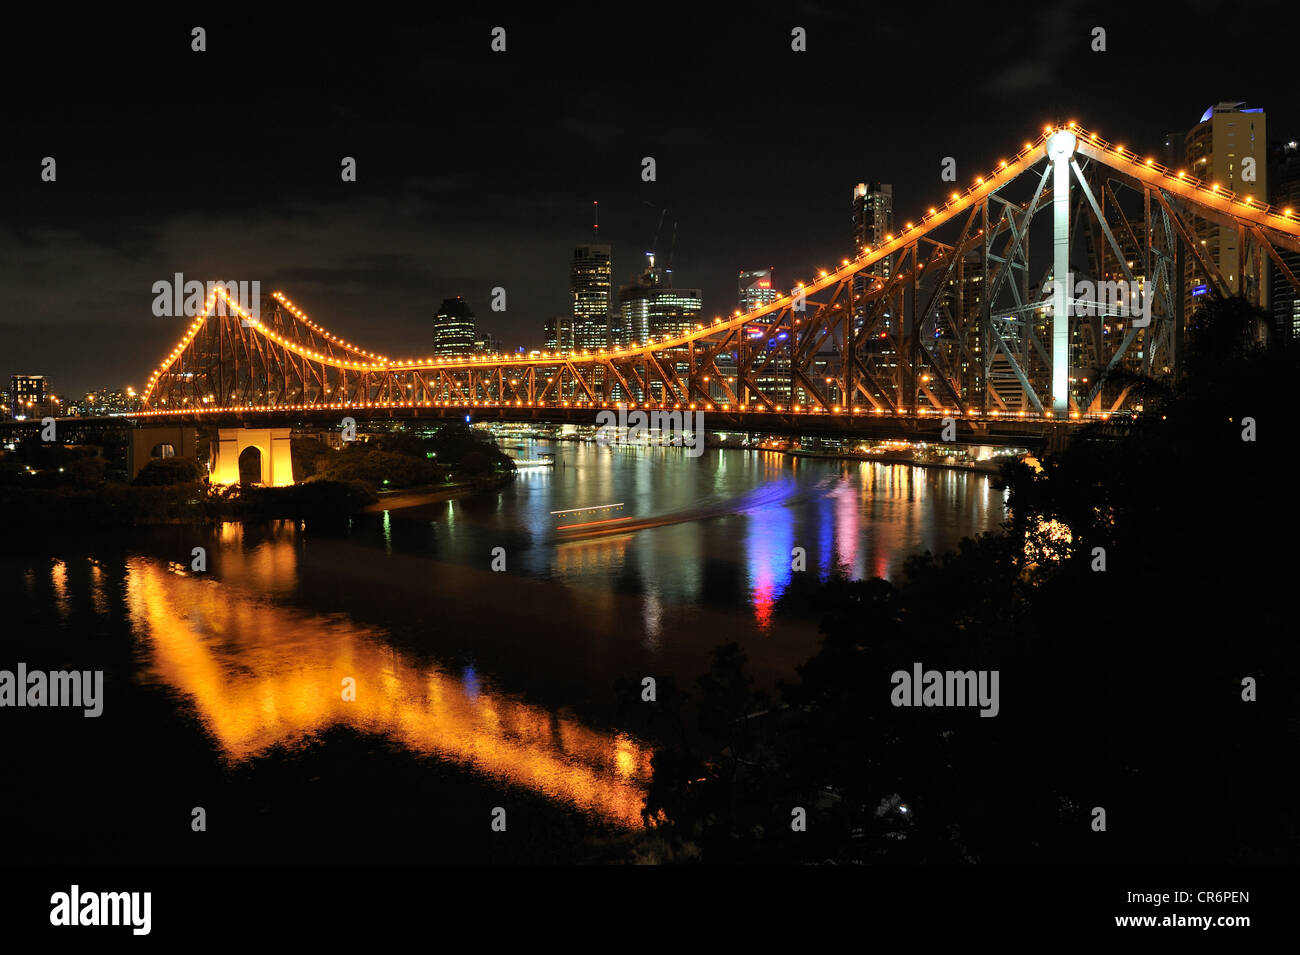 Story Bridge over the Brisbane River at night with cityscape in background. Brisbane, Australia - Stock Image